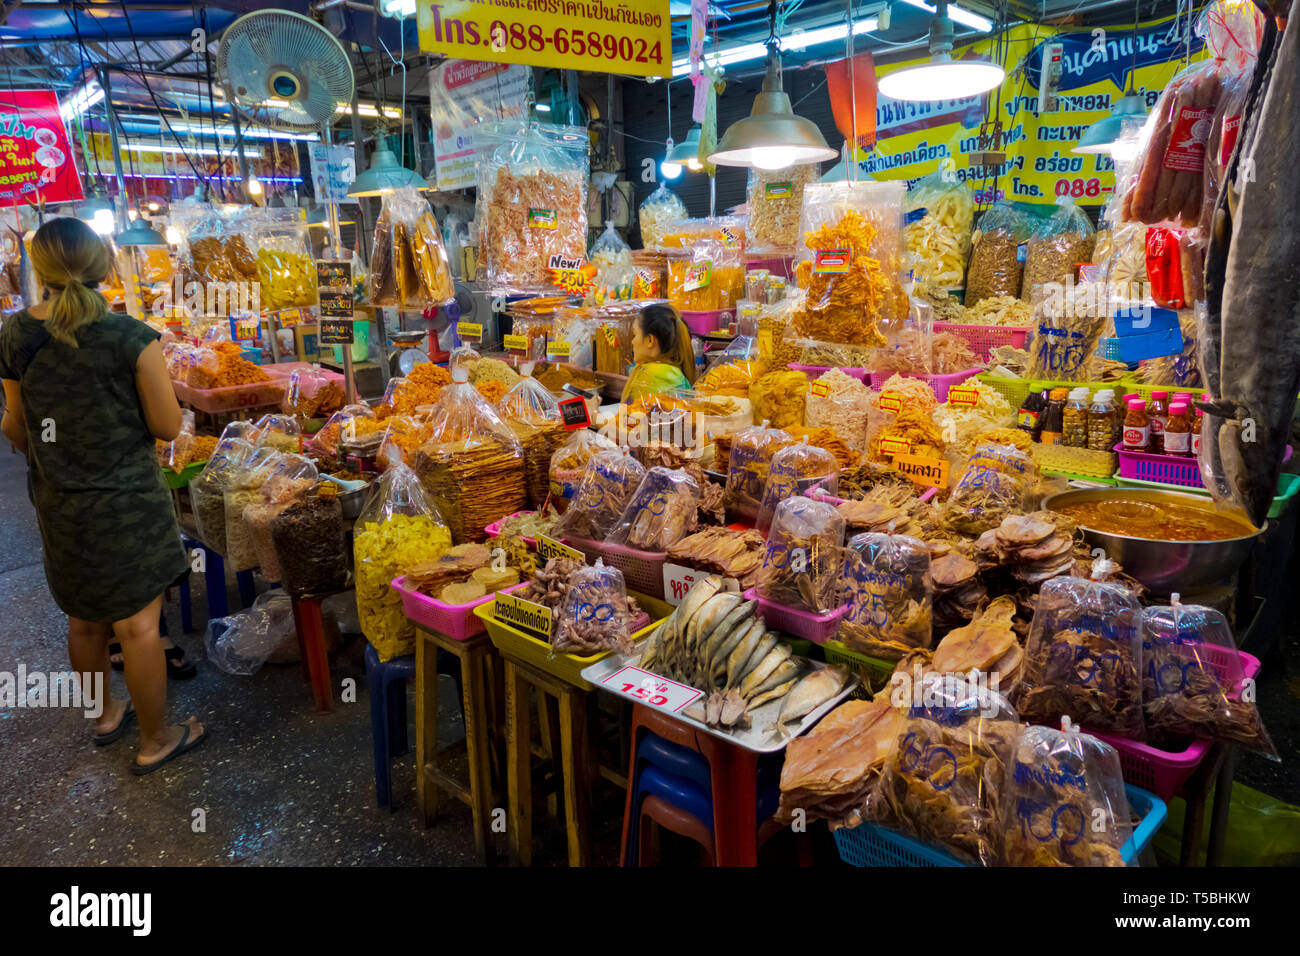 Preserved local produce, Chatchai Market, Hua Hin, Thailand - Stock Image